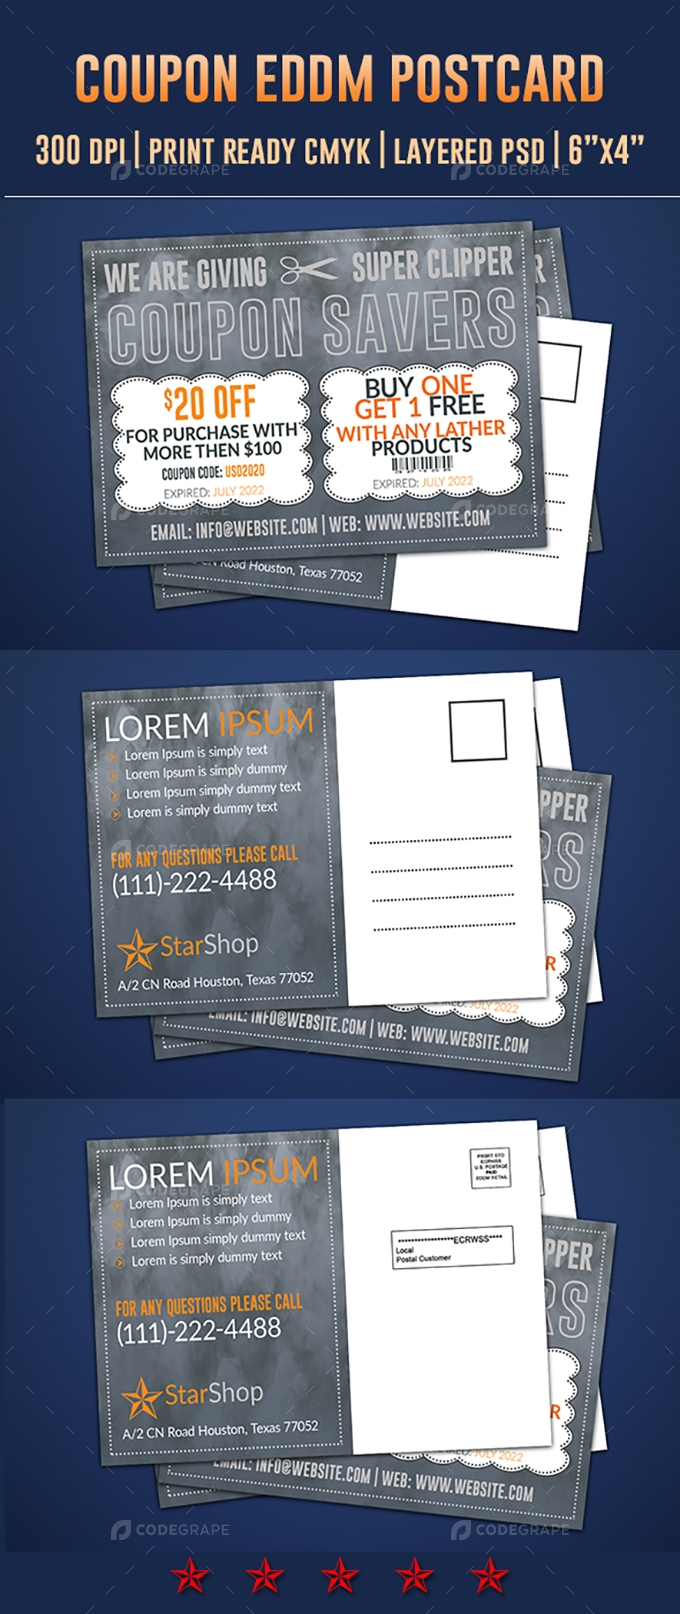 Coupon Postcard & Direct Mail EDDM Design Template